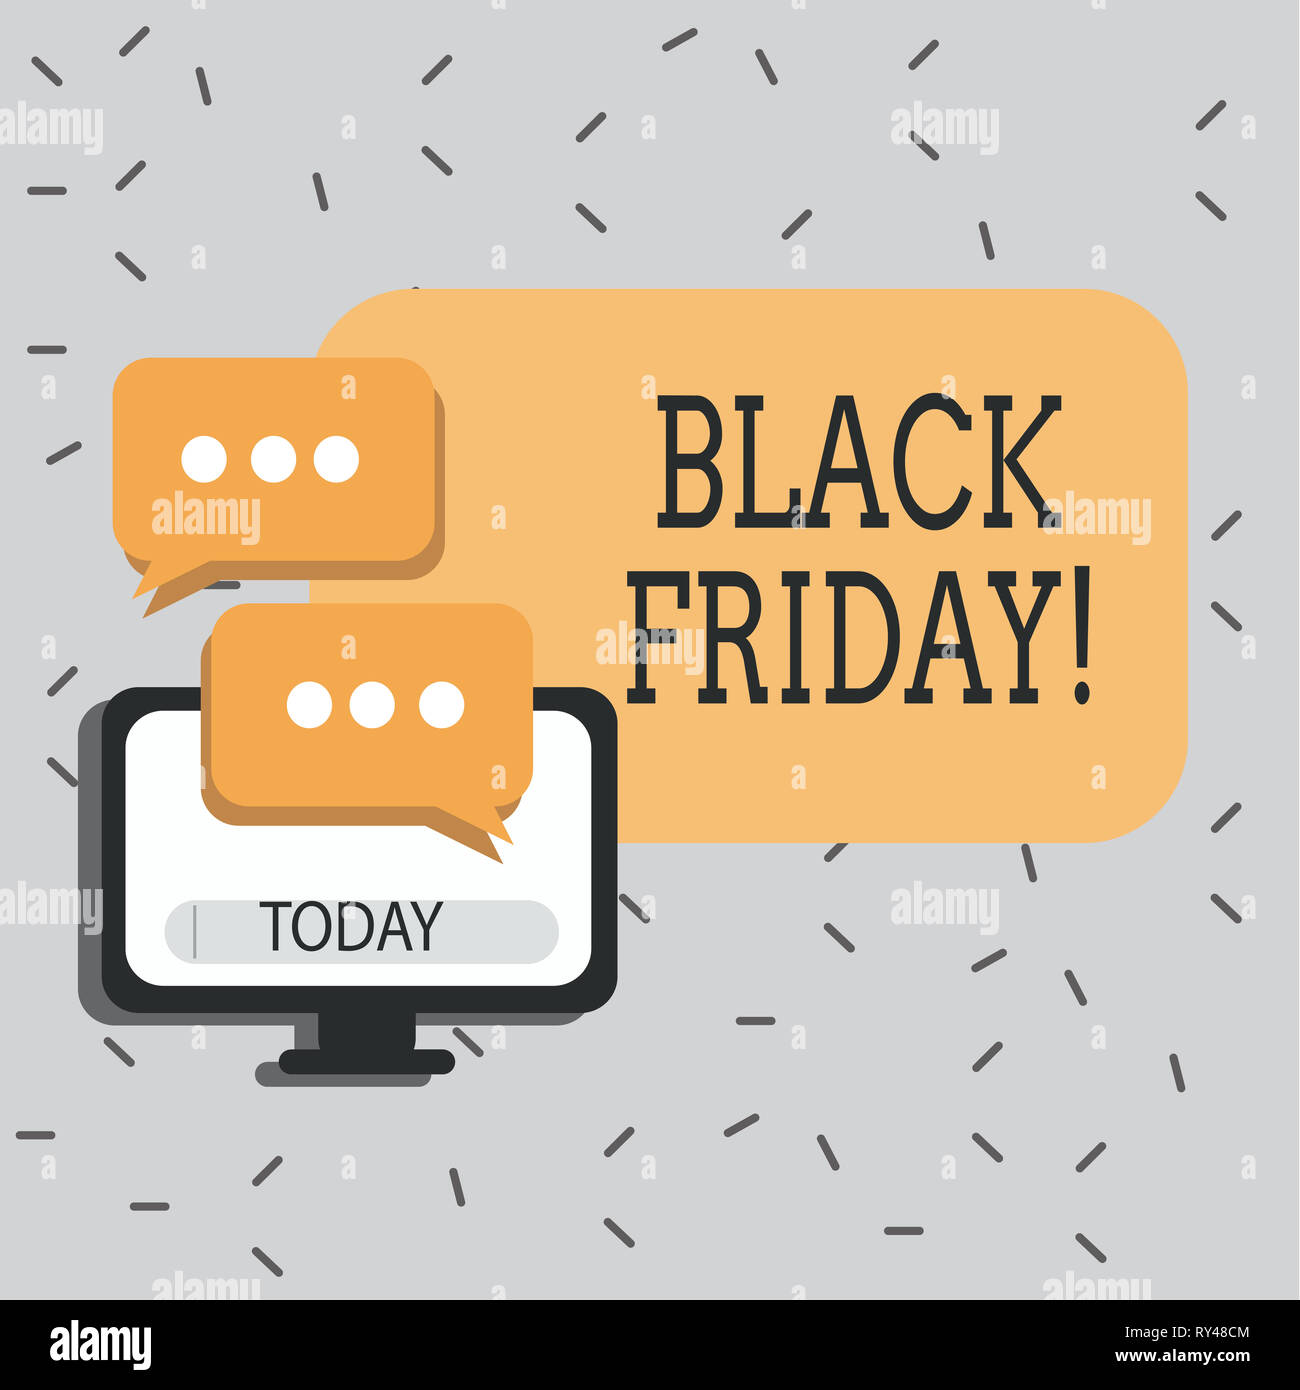 Black Friday Sale Rush Stock Photos & Black Friday Sale Rush